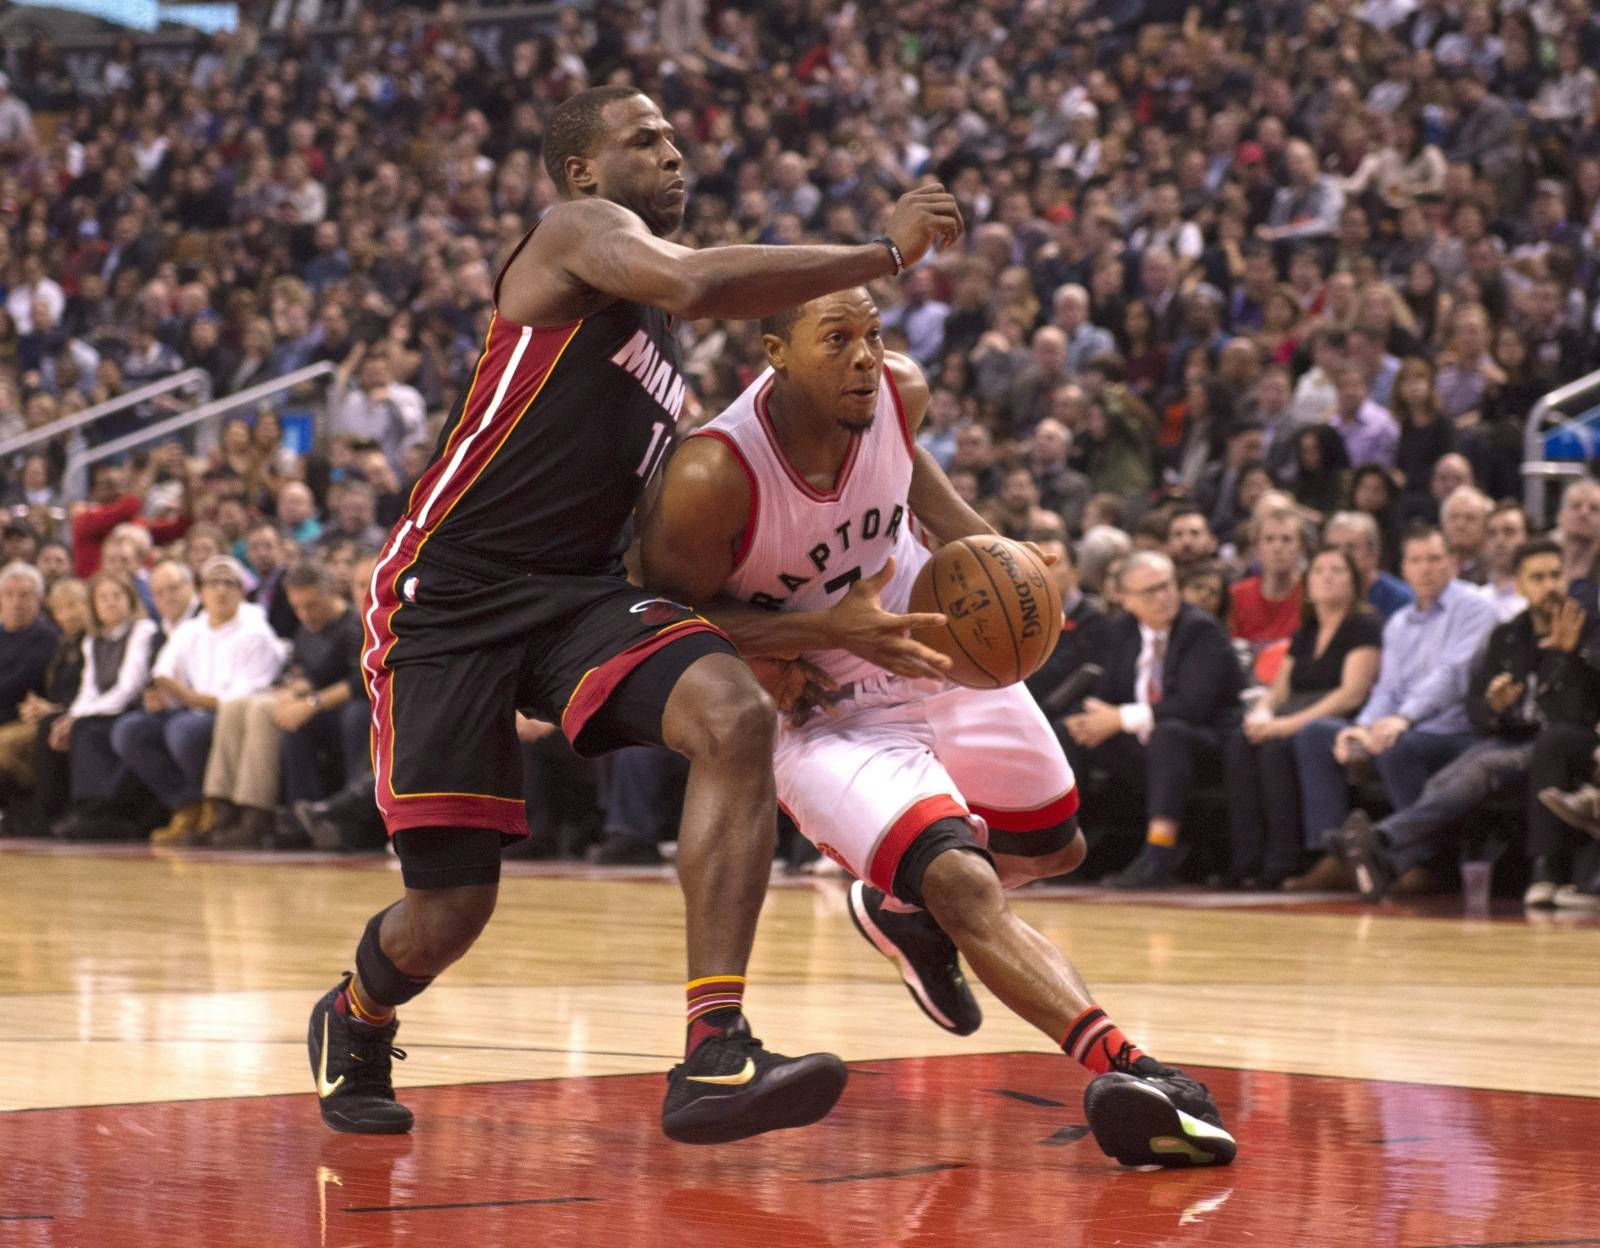 Kyle Lowry, Dion Waiters